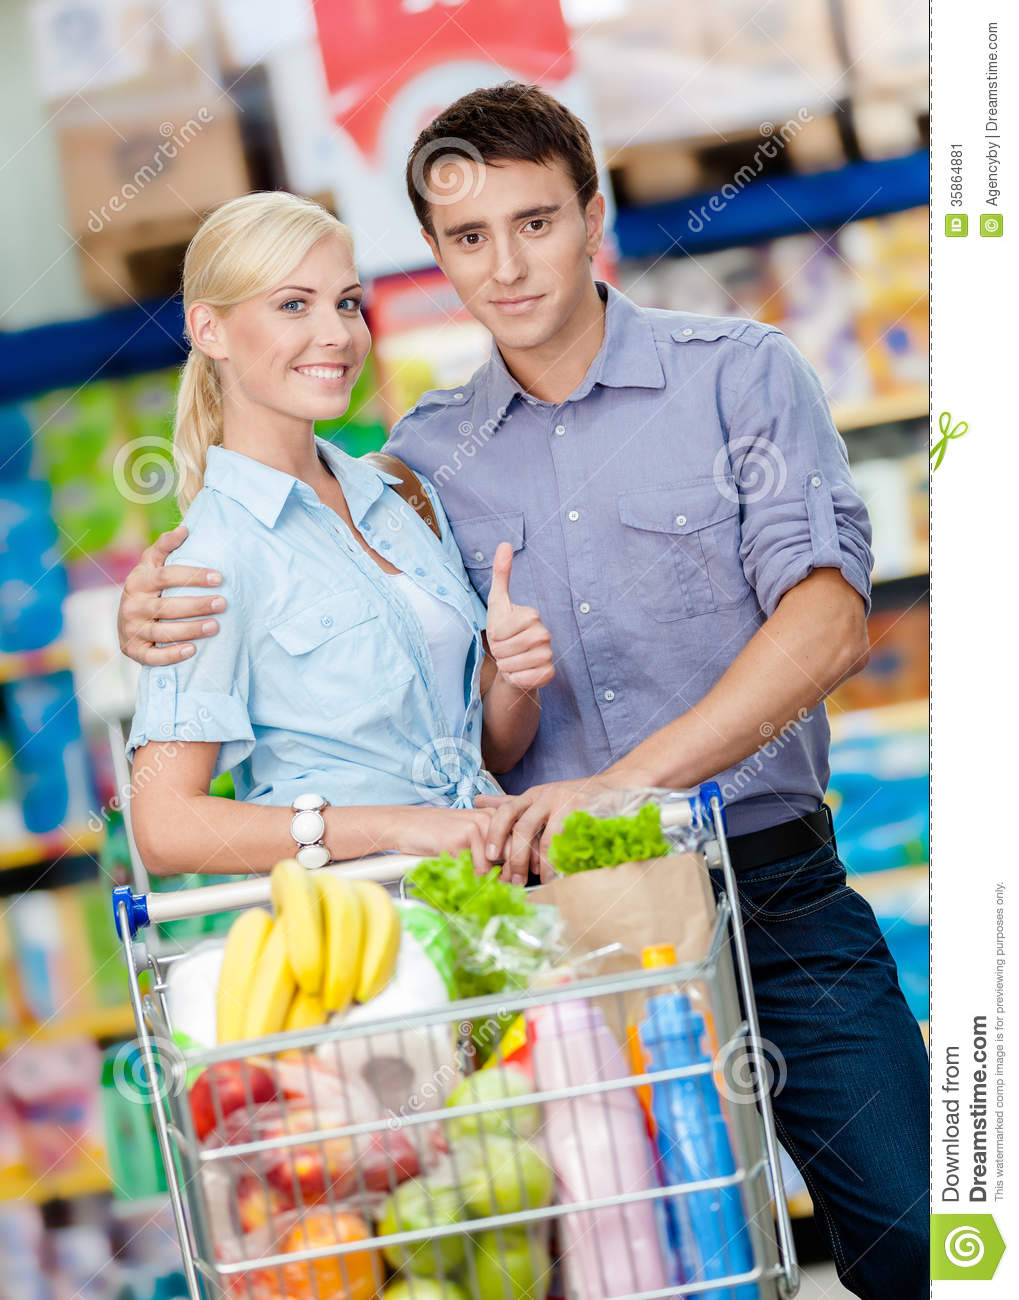 Couple In The Market With Cart Full Of Food Stock Image